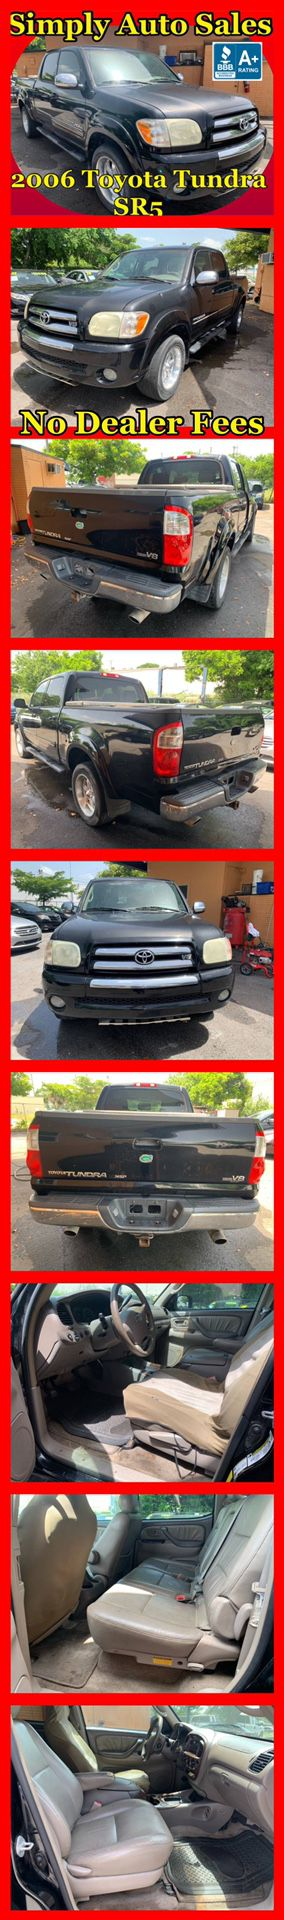 2006 Toyota Tundra SR5 4 Dr Double Cab for Sale in West Palm Beach, FL